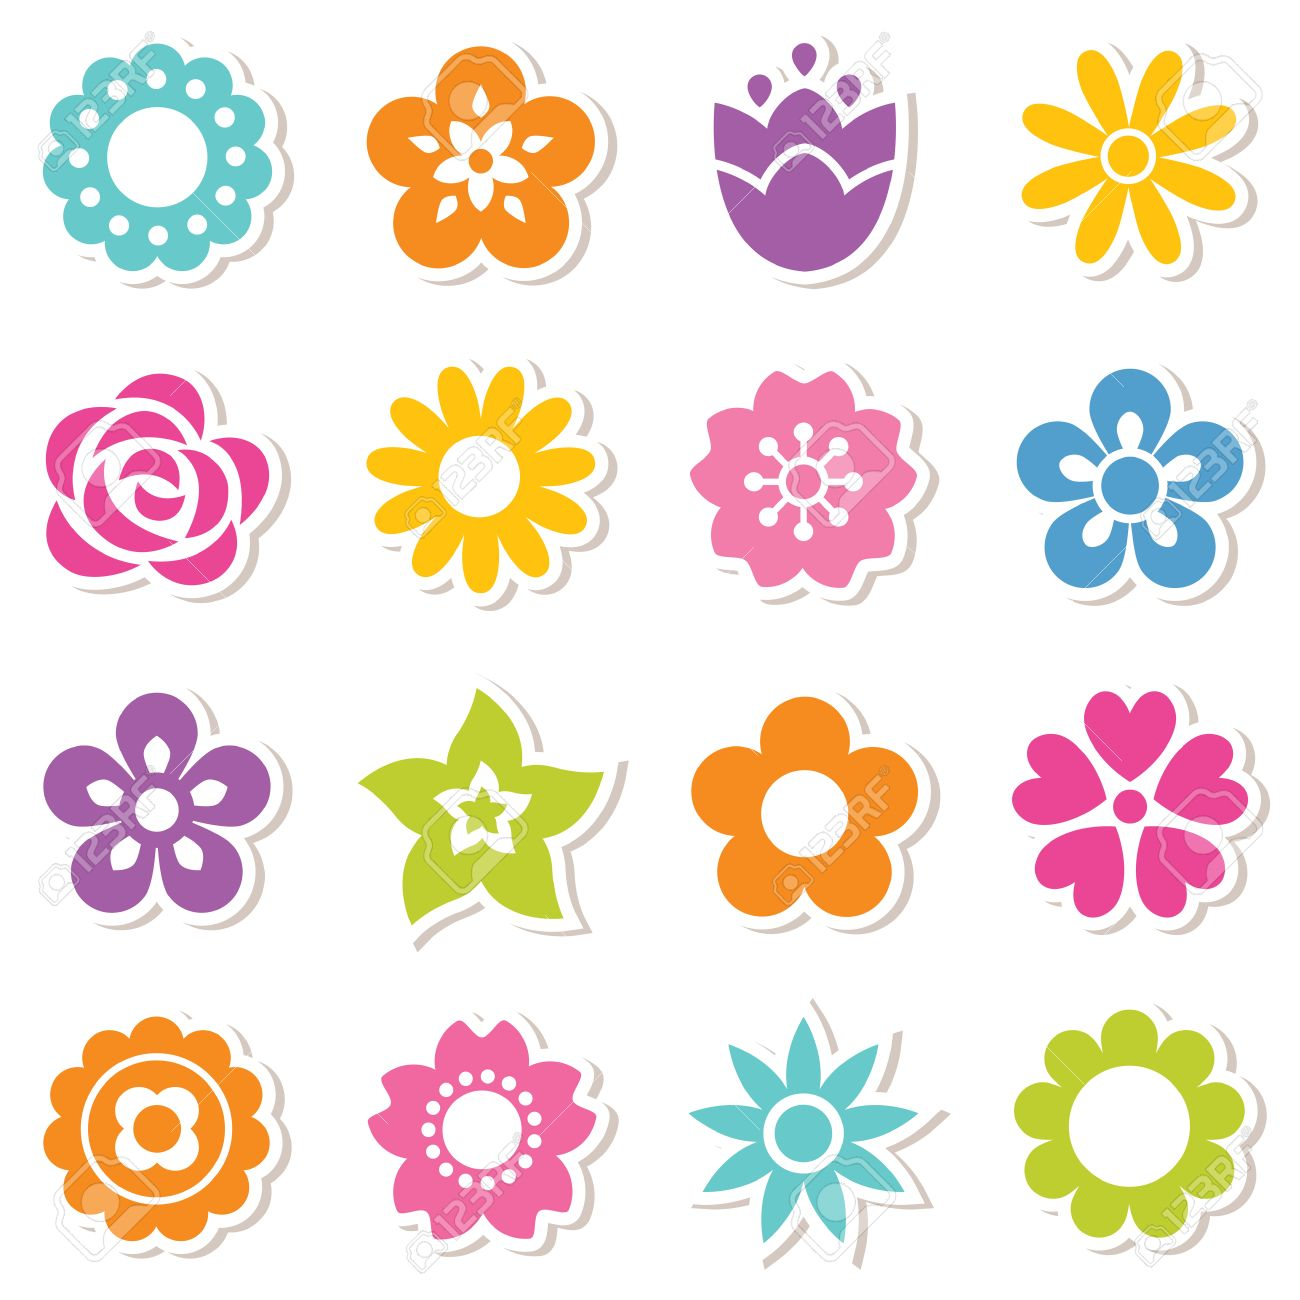 Flower cartoon stock photos royalty free flower cartoon images set of flat icon flower stickers in bright colors simple retro designs seamless background izmirmasajfo Images